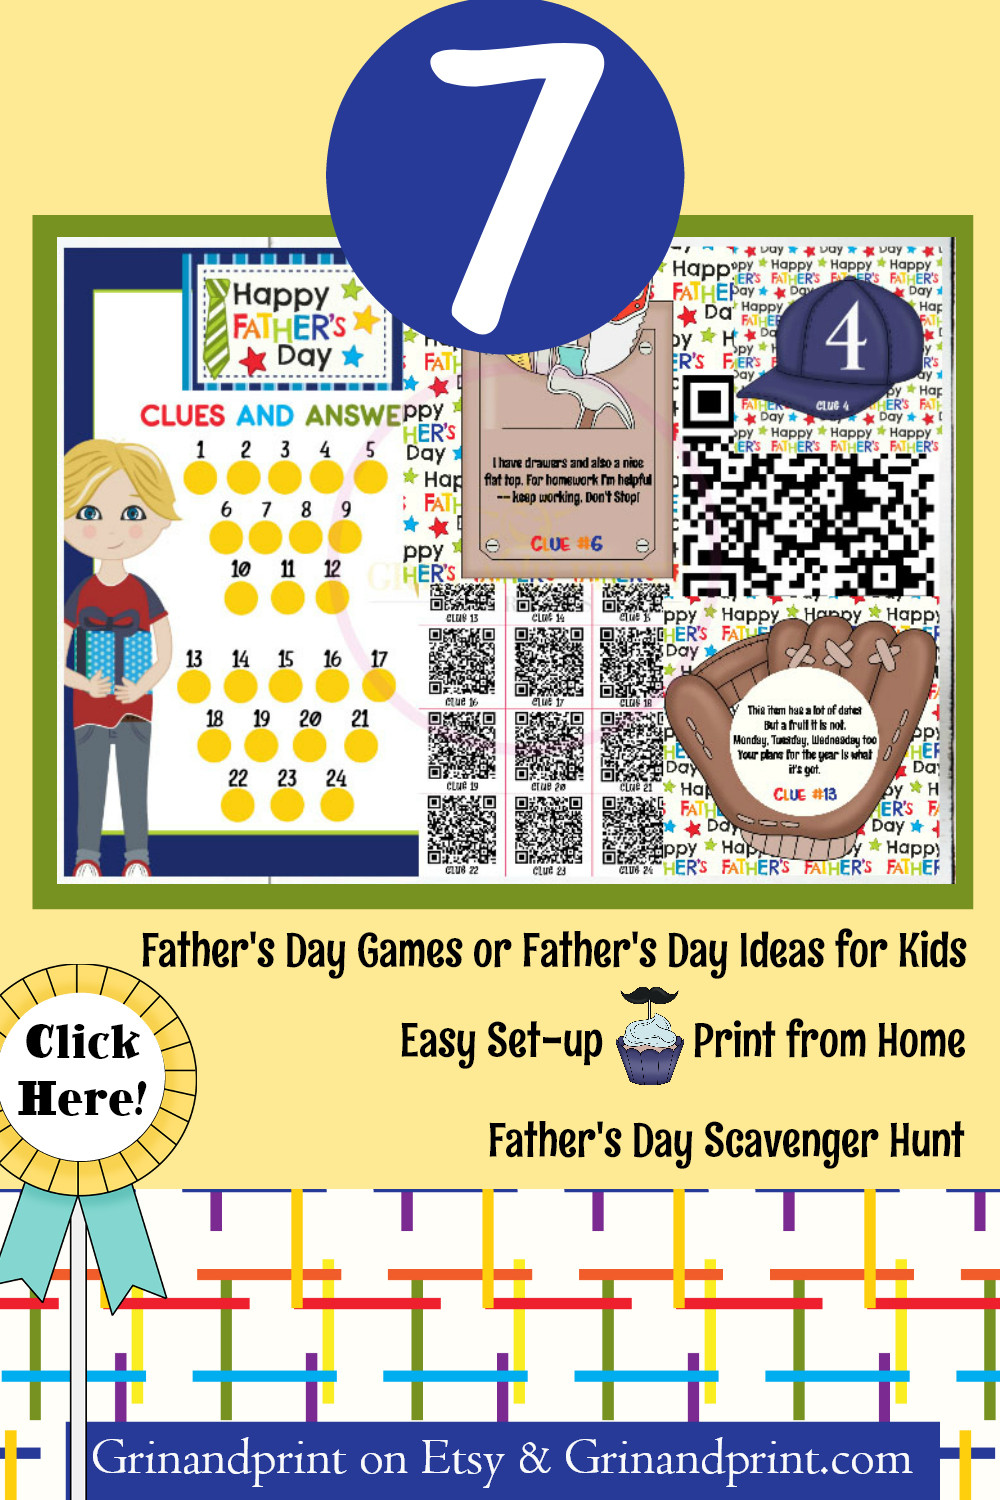 Fathers Day Scavenger Hunt / Fathers Day Games / Fathers Day Ideas for Kids / Printable / Scavenger Hunt / Fathers Day Scavenger Hunt / Fathers Day Gift